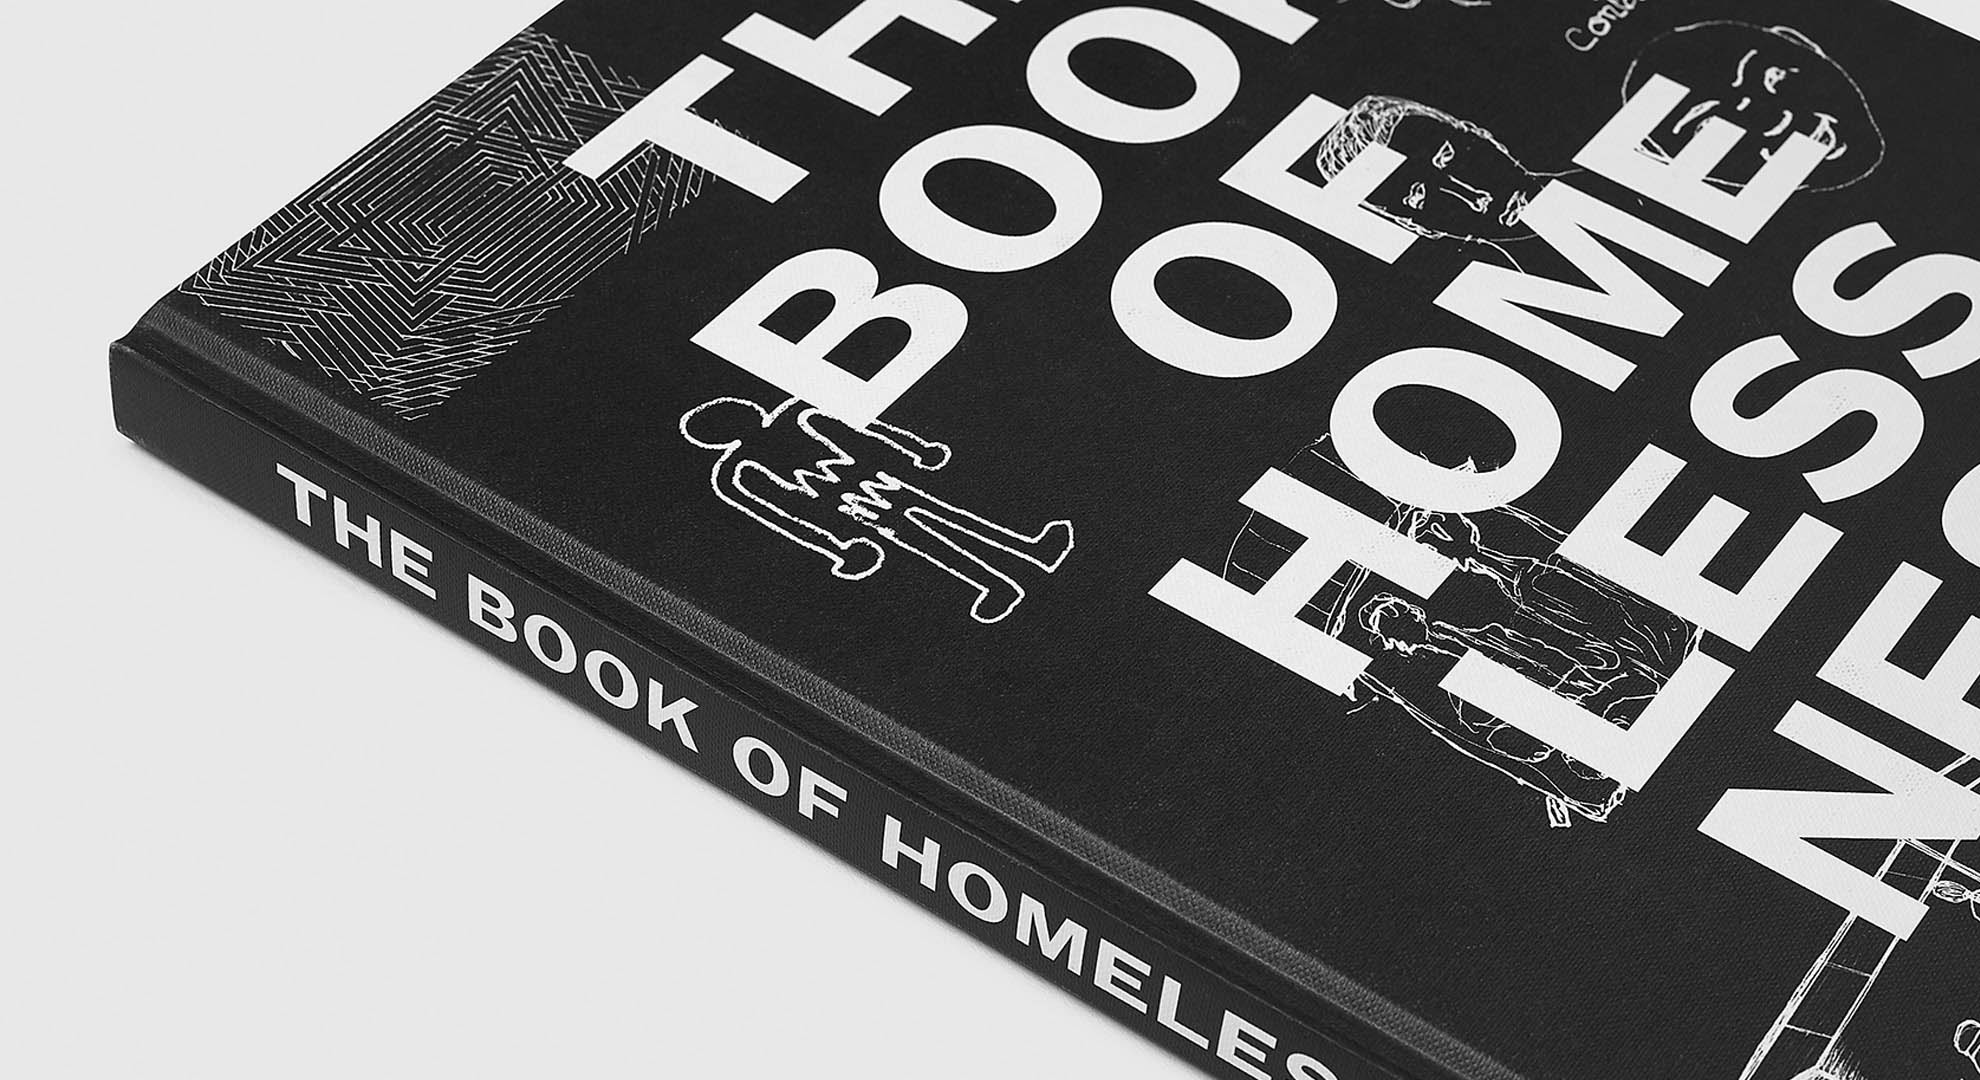 """The Book of Homelessness"", the first graphic novel created by homeless people"